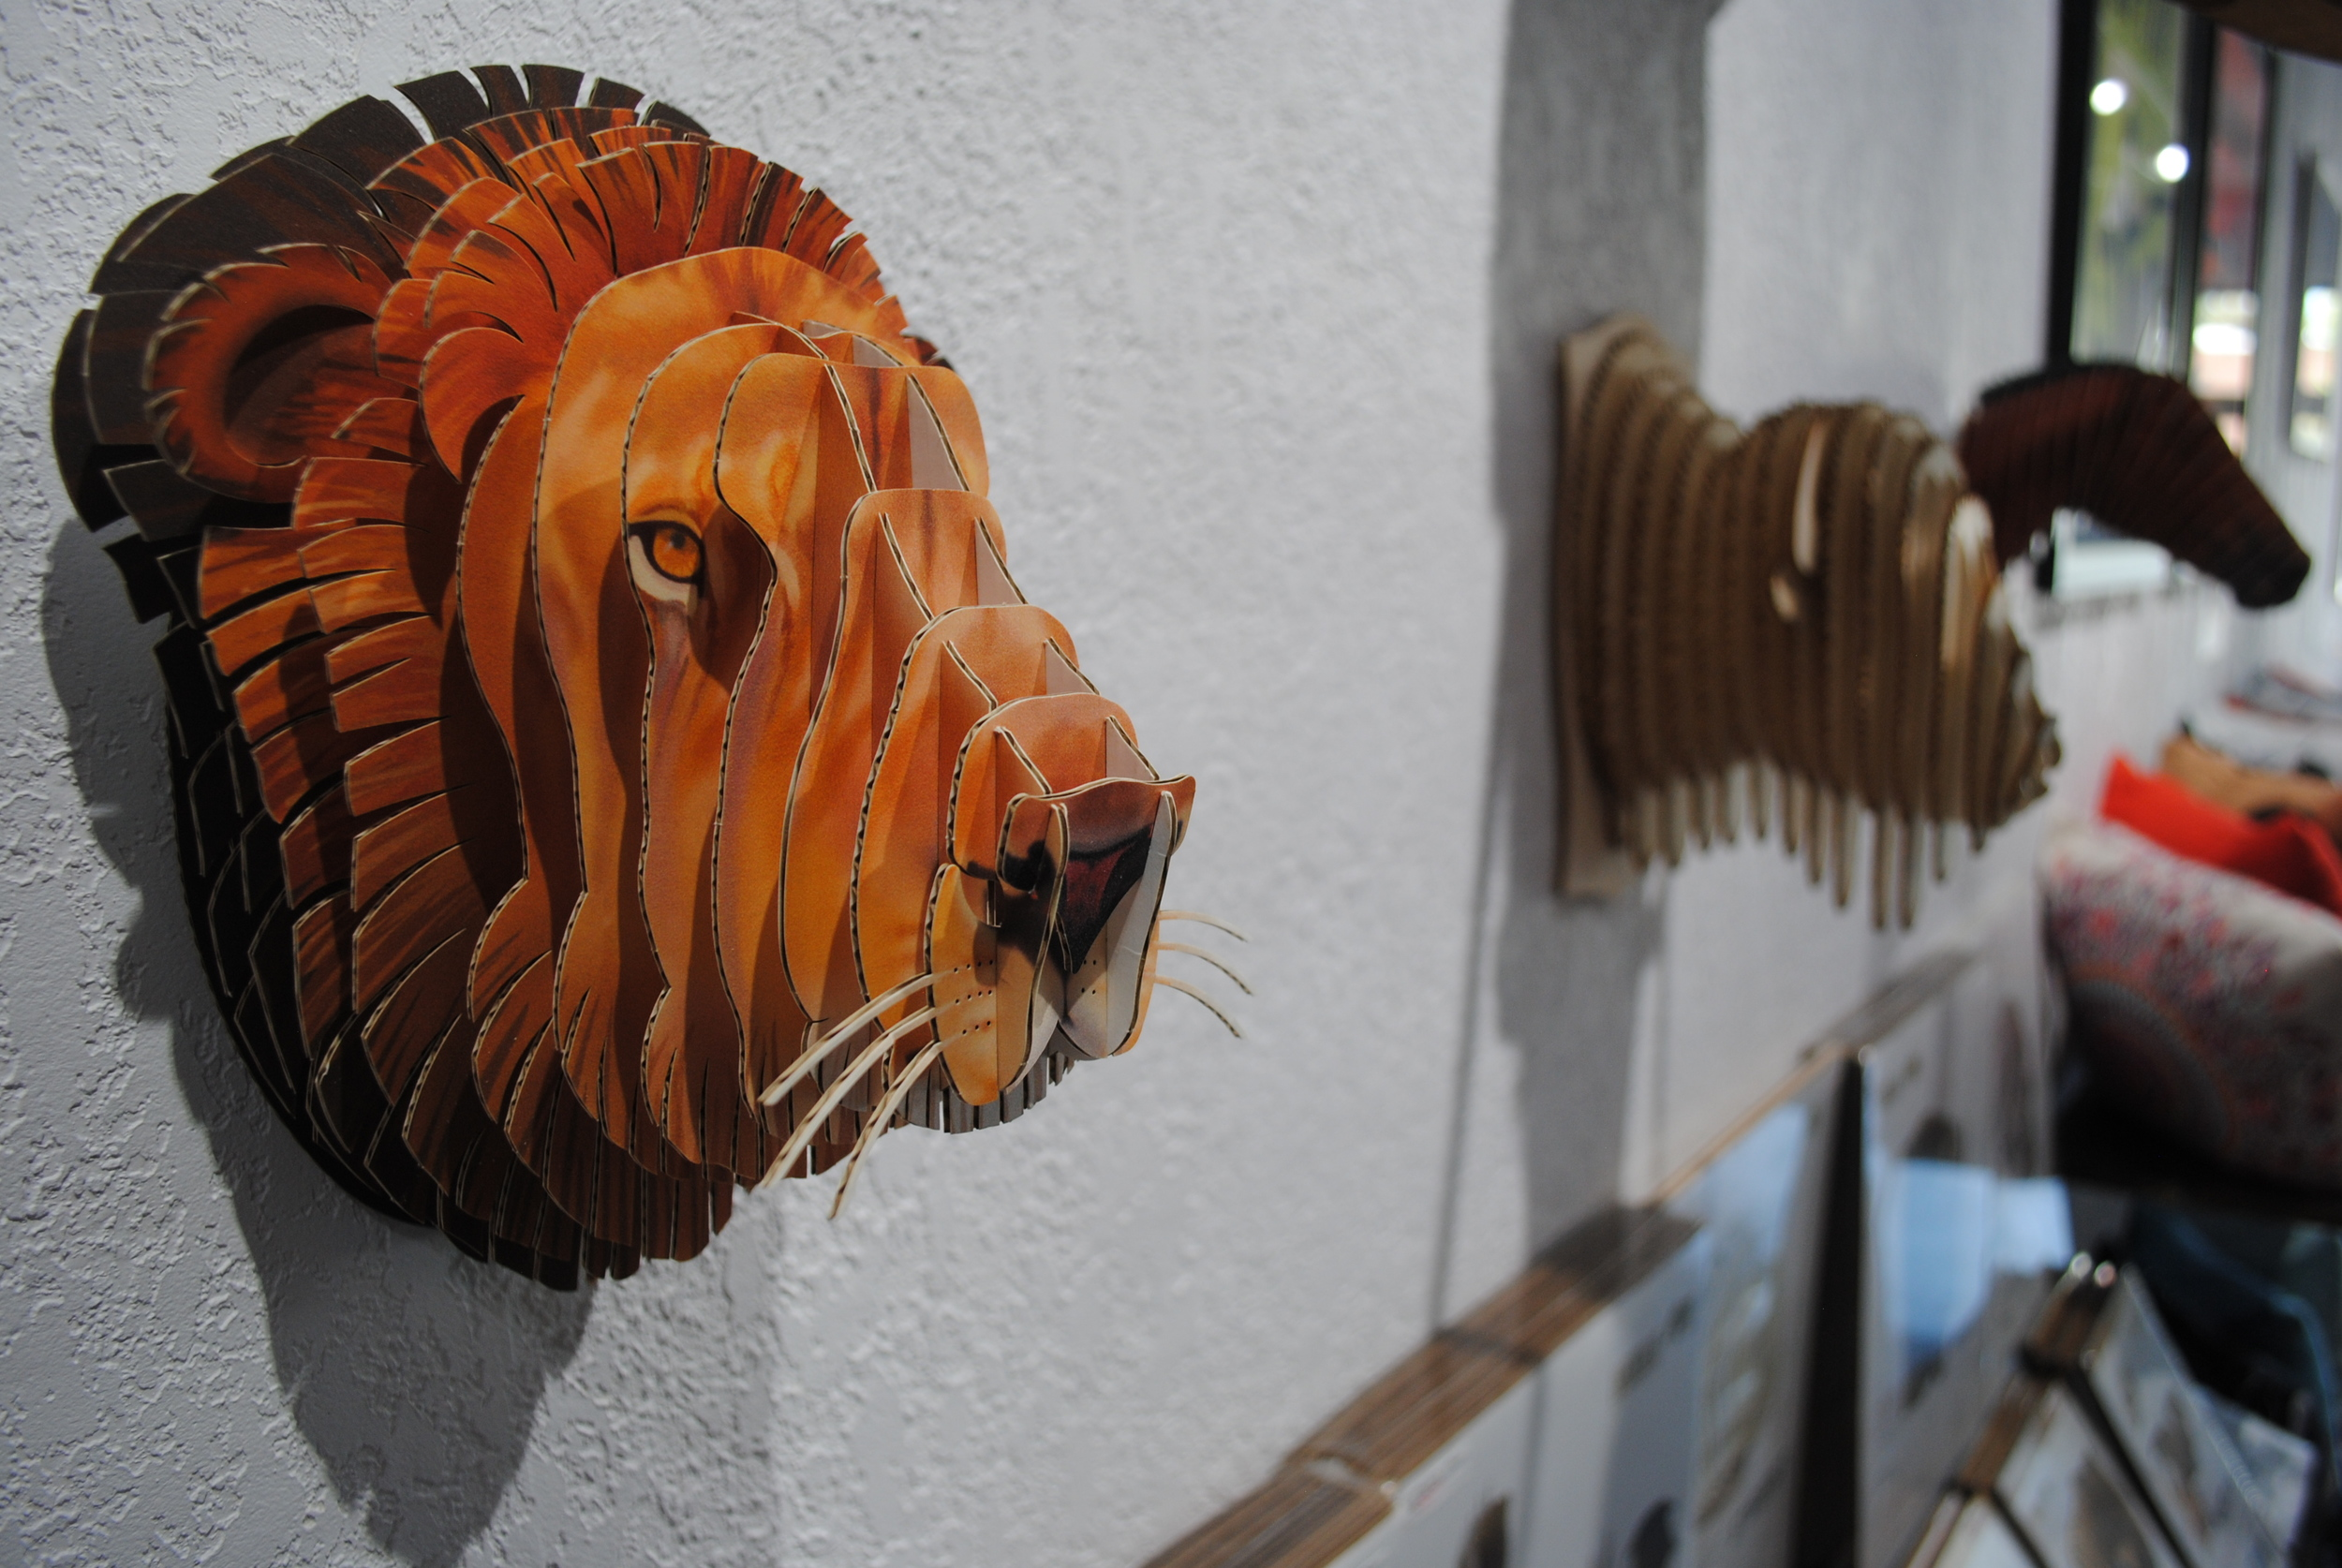 Cardboard Safari Lion from The Prints and the Paper in Edmonton on 124 street